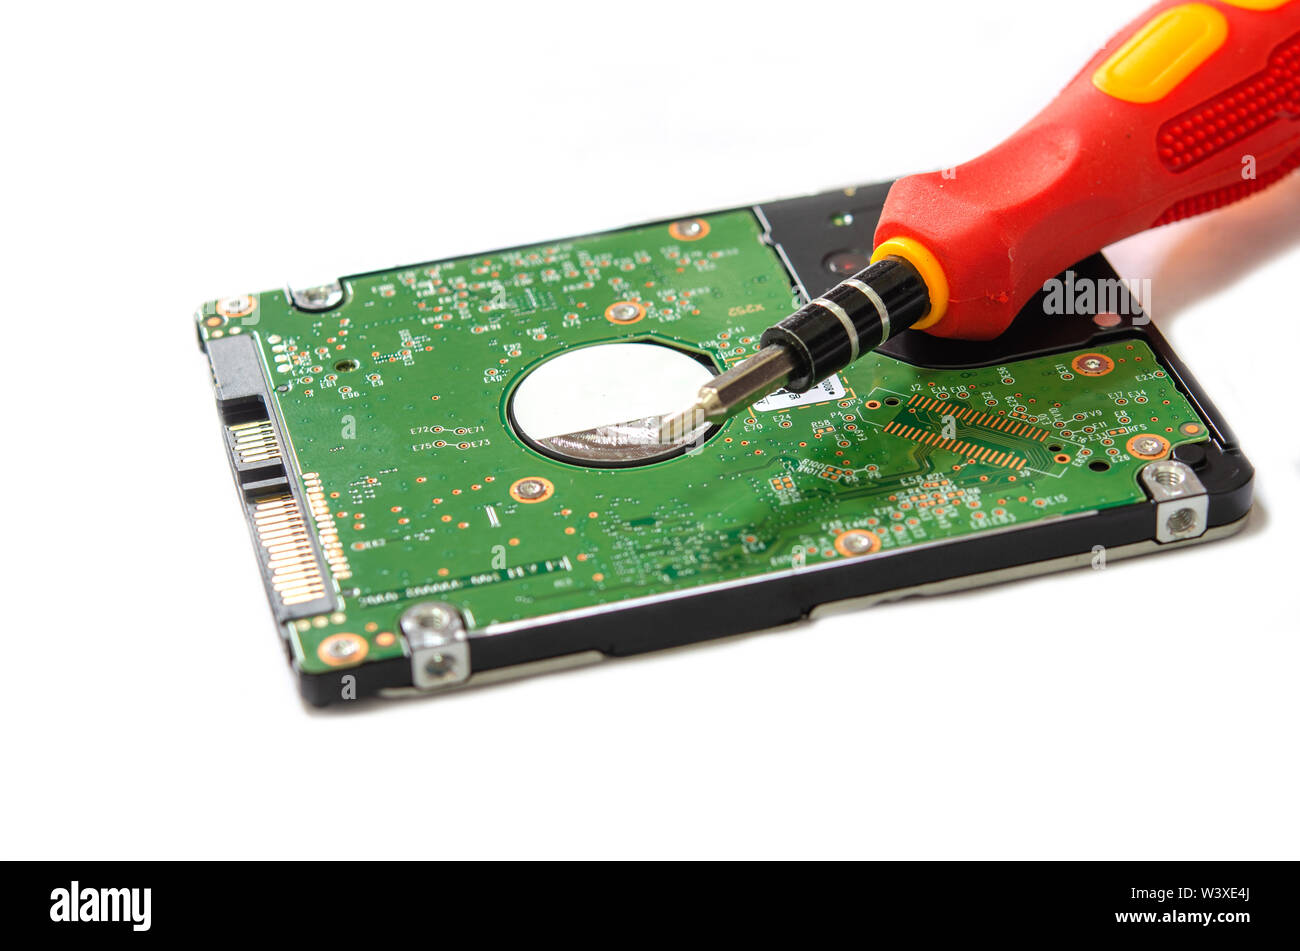 Hard drive notebook computers on the white background. - Stock Image